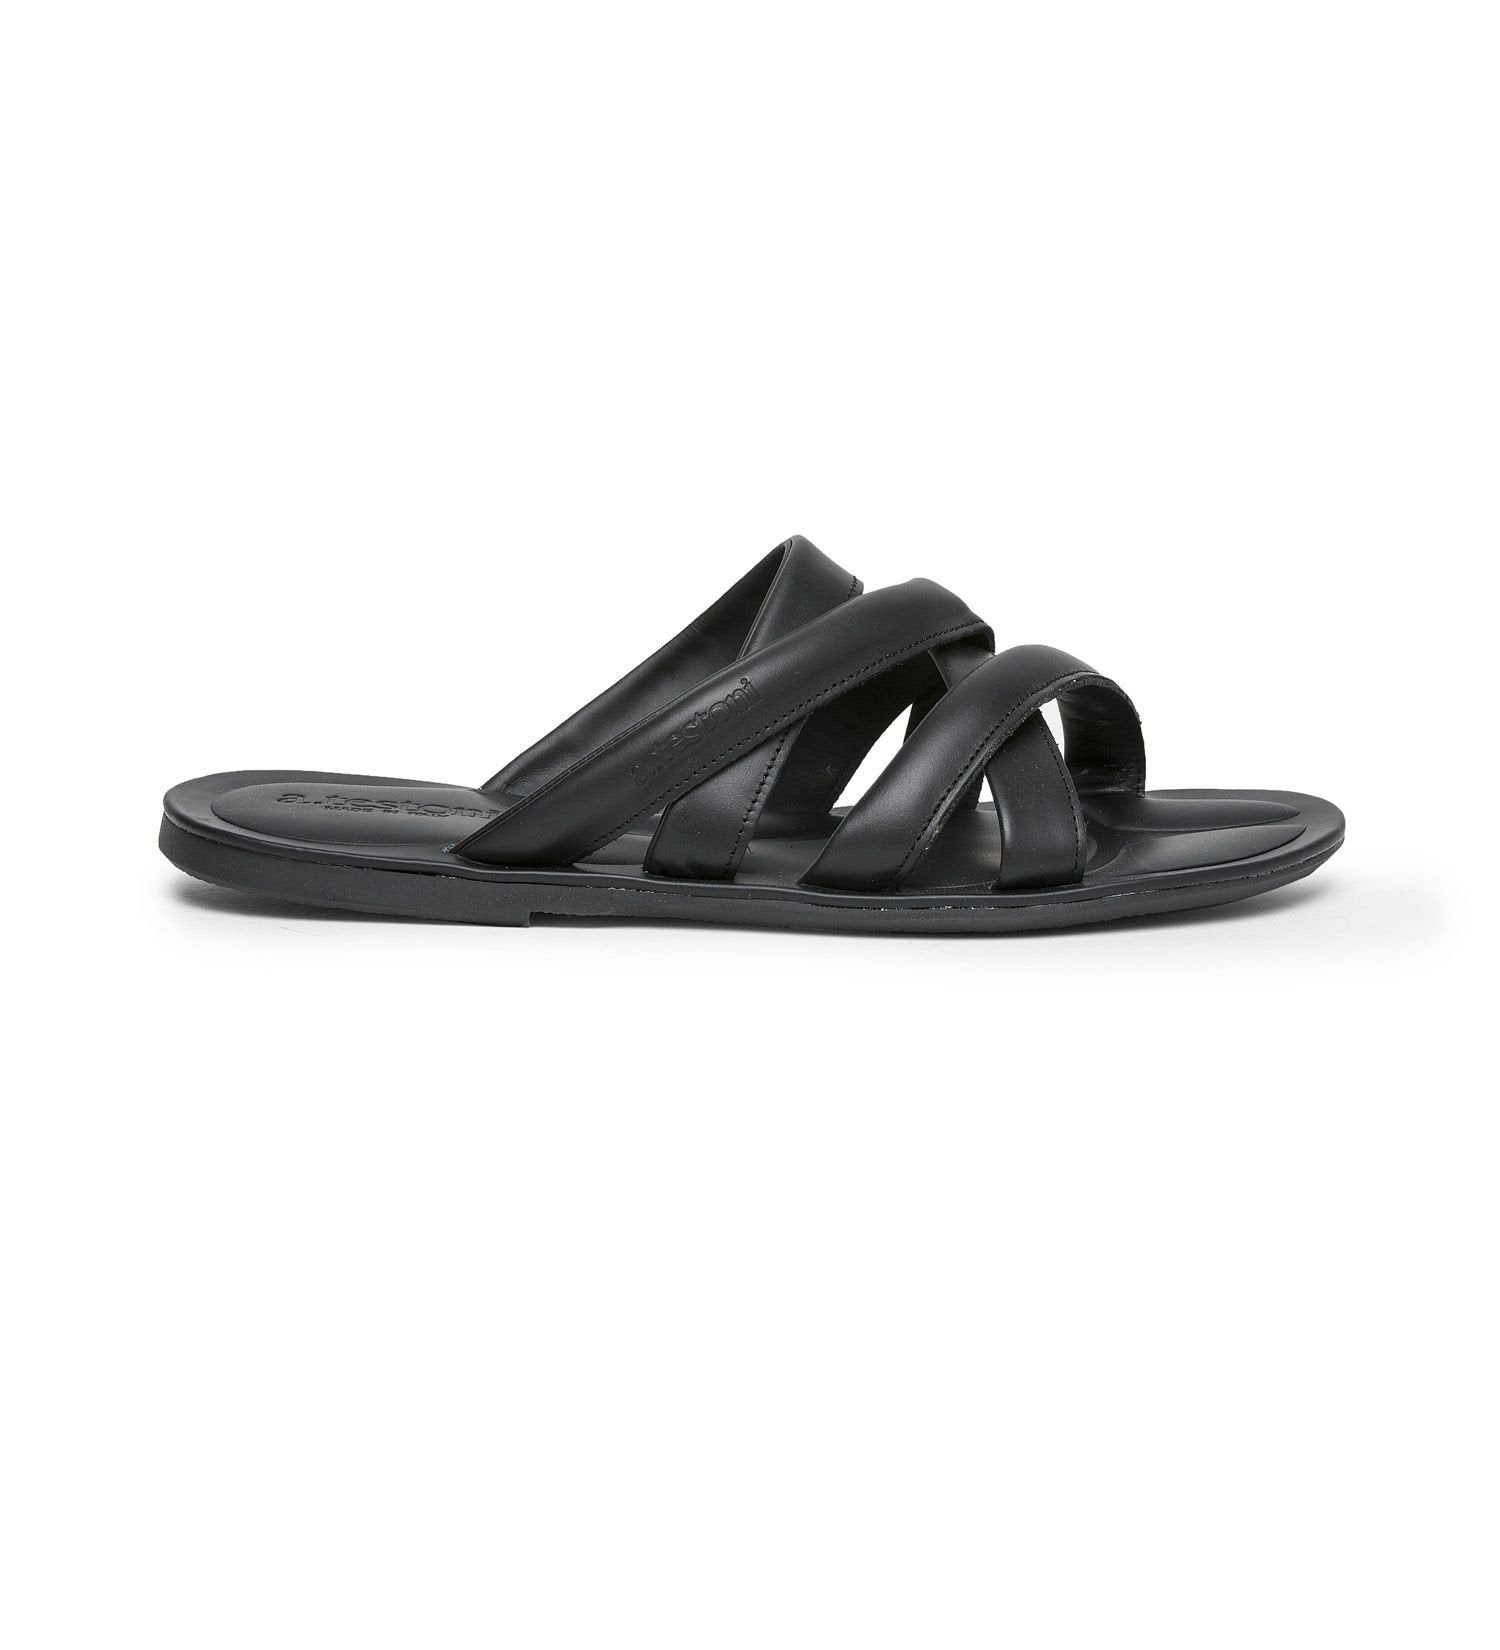 LEATHER SANDAL,SANDAL,A.TESTONI, | GentRow.com